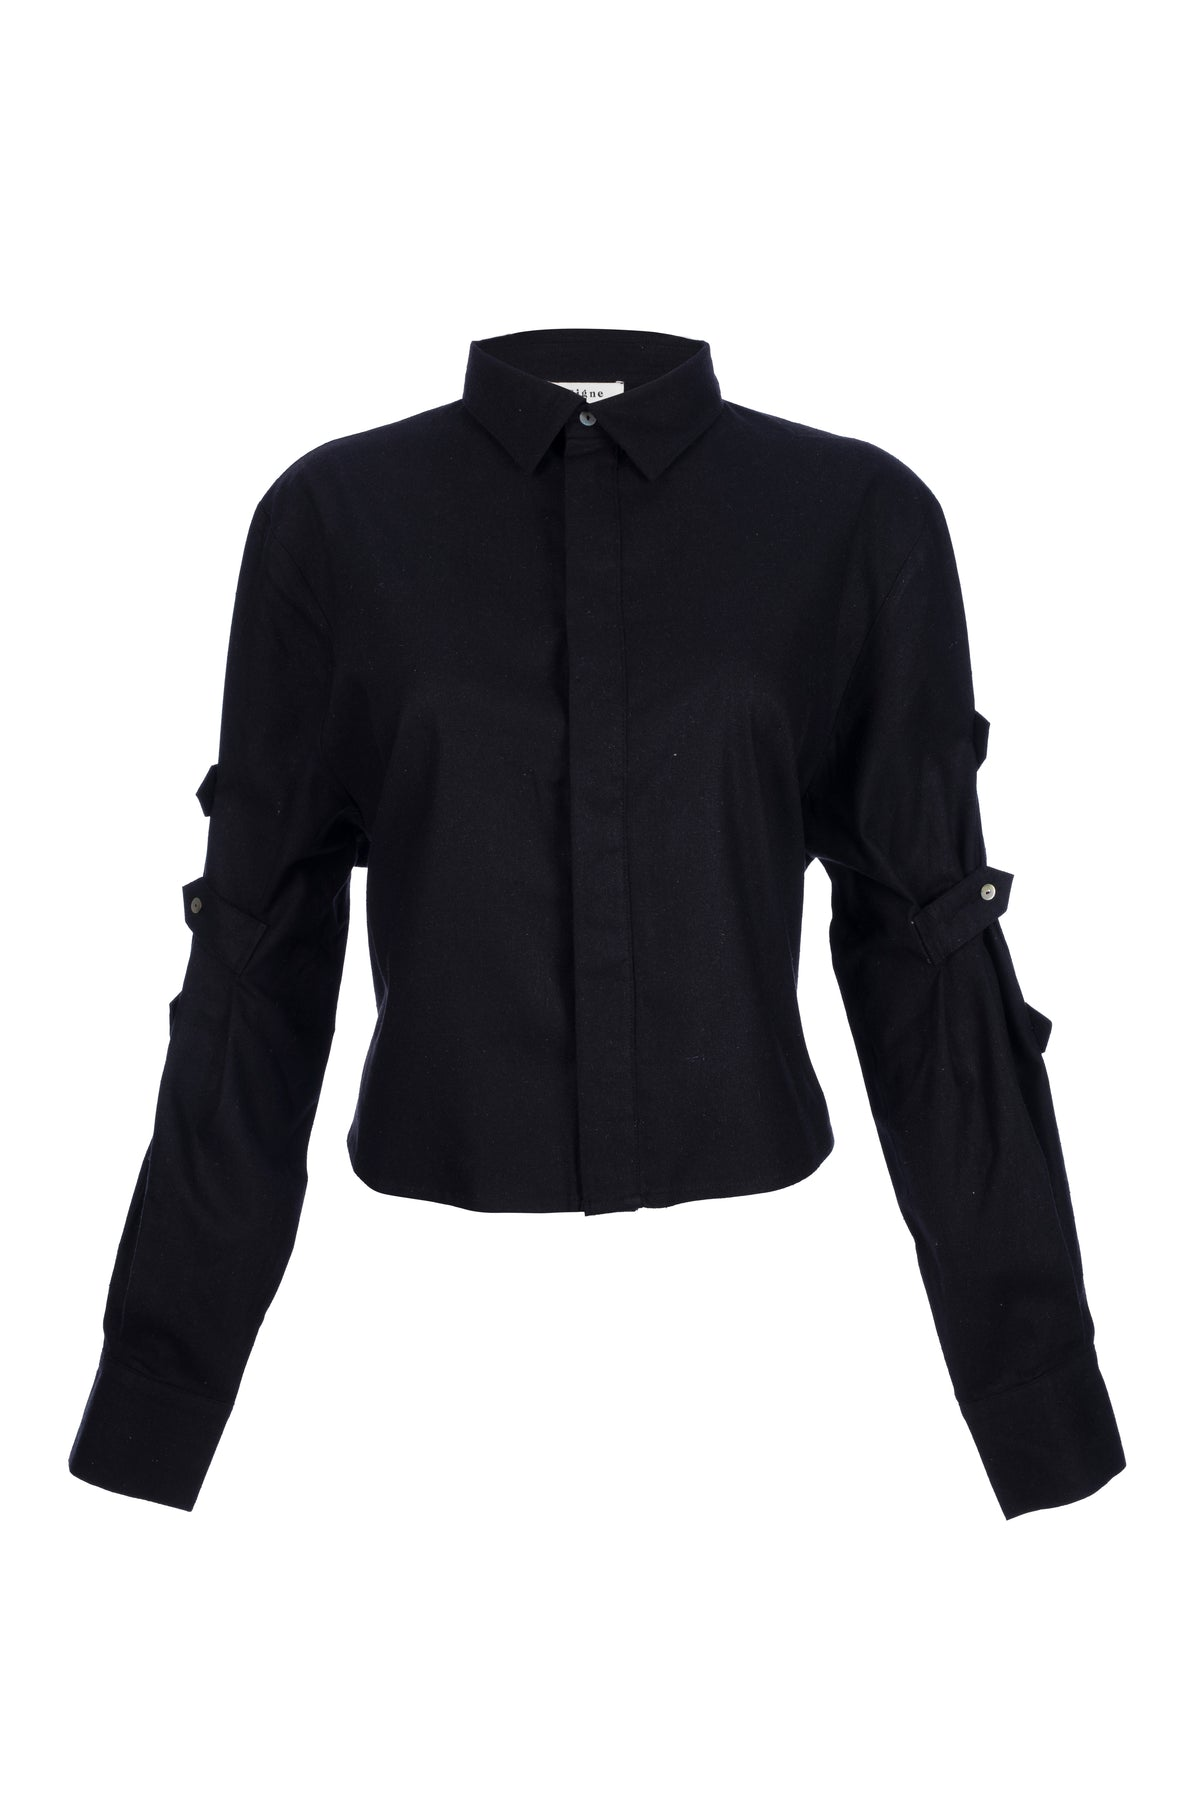 By Signe Dandie Shirt in Black with a cropped silhouette and button-accented sleeves